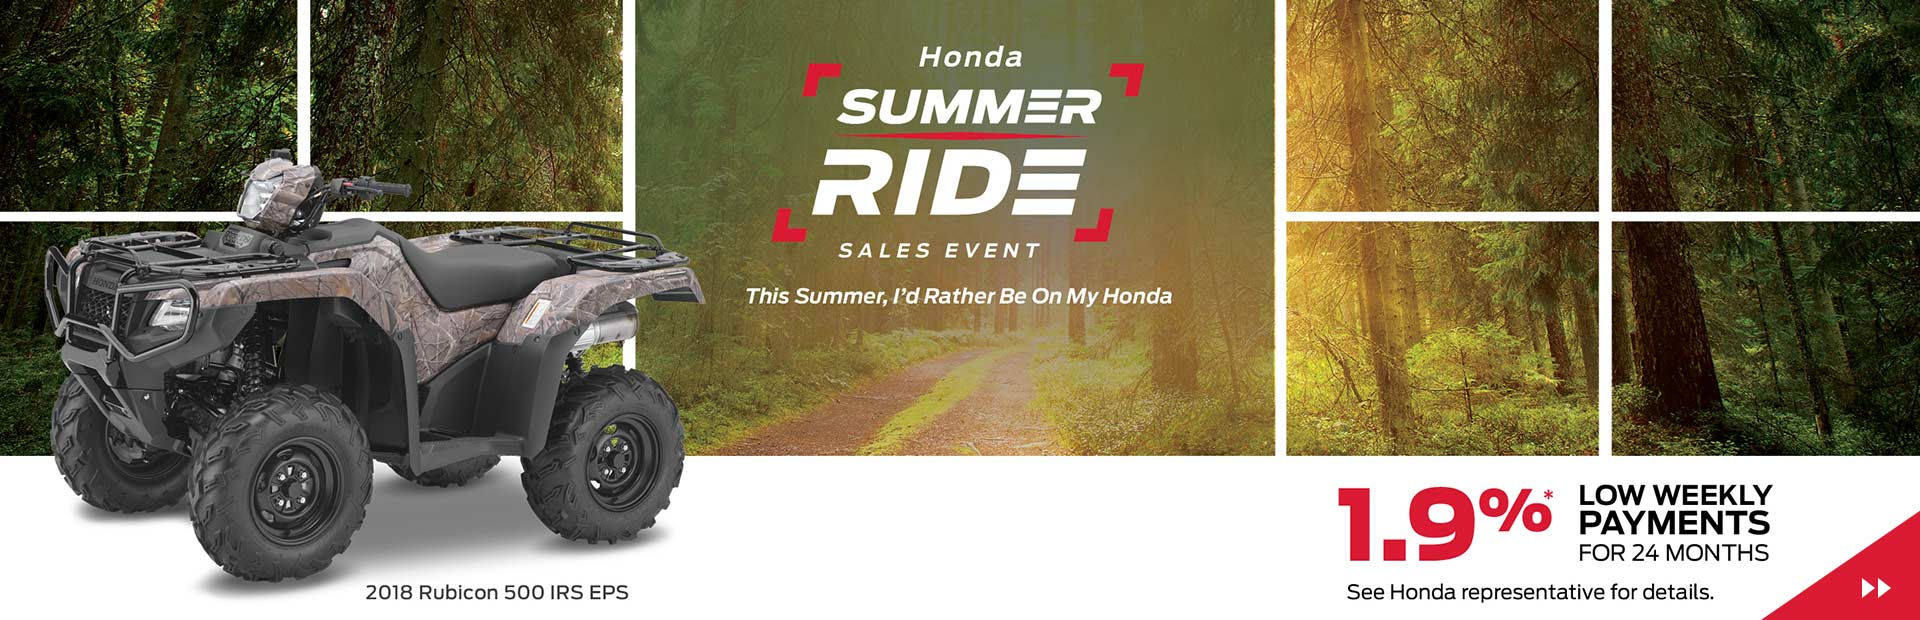 Honda Summer Ride Sales Event - Financing from 1.9% oac for 24 months!